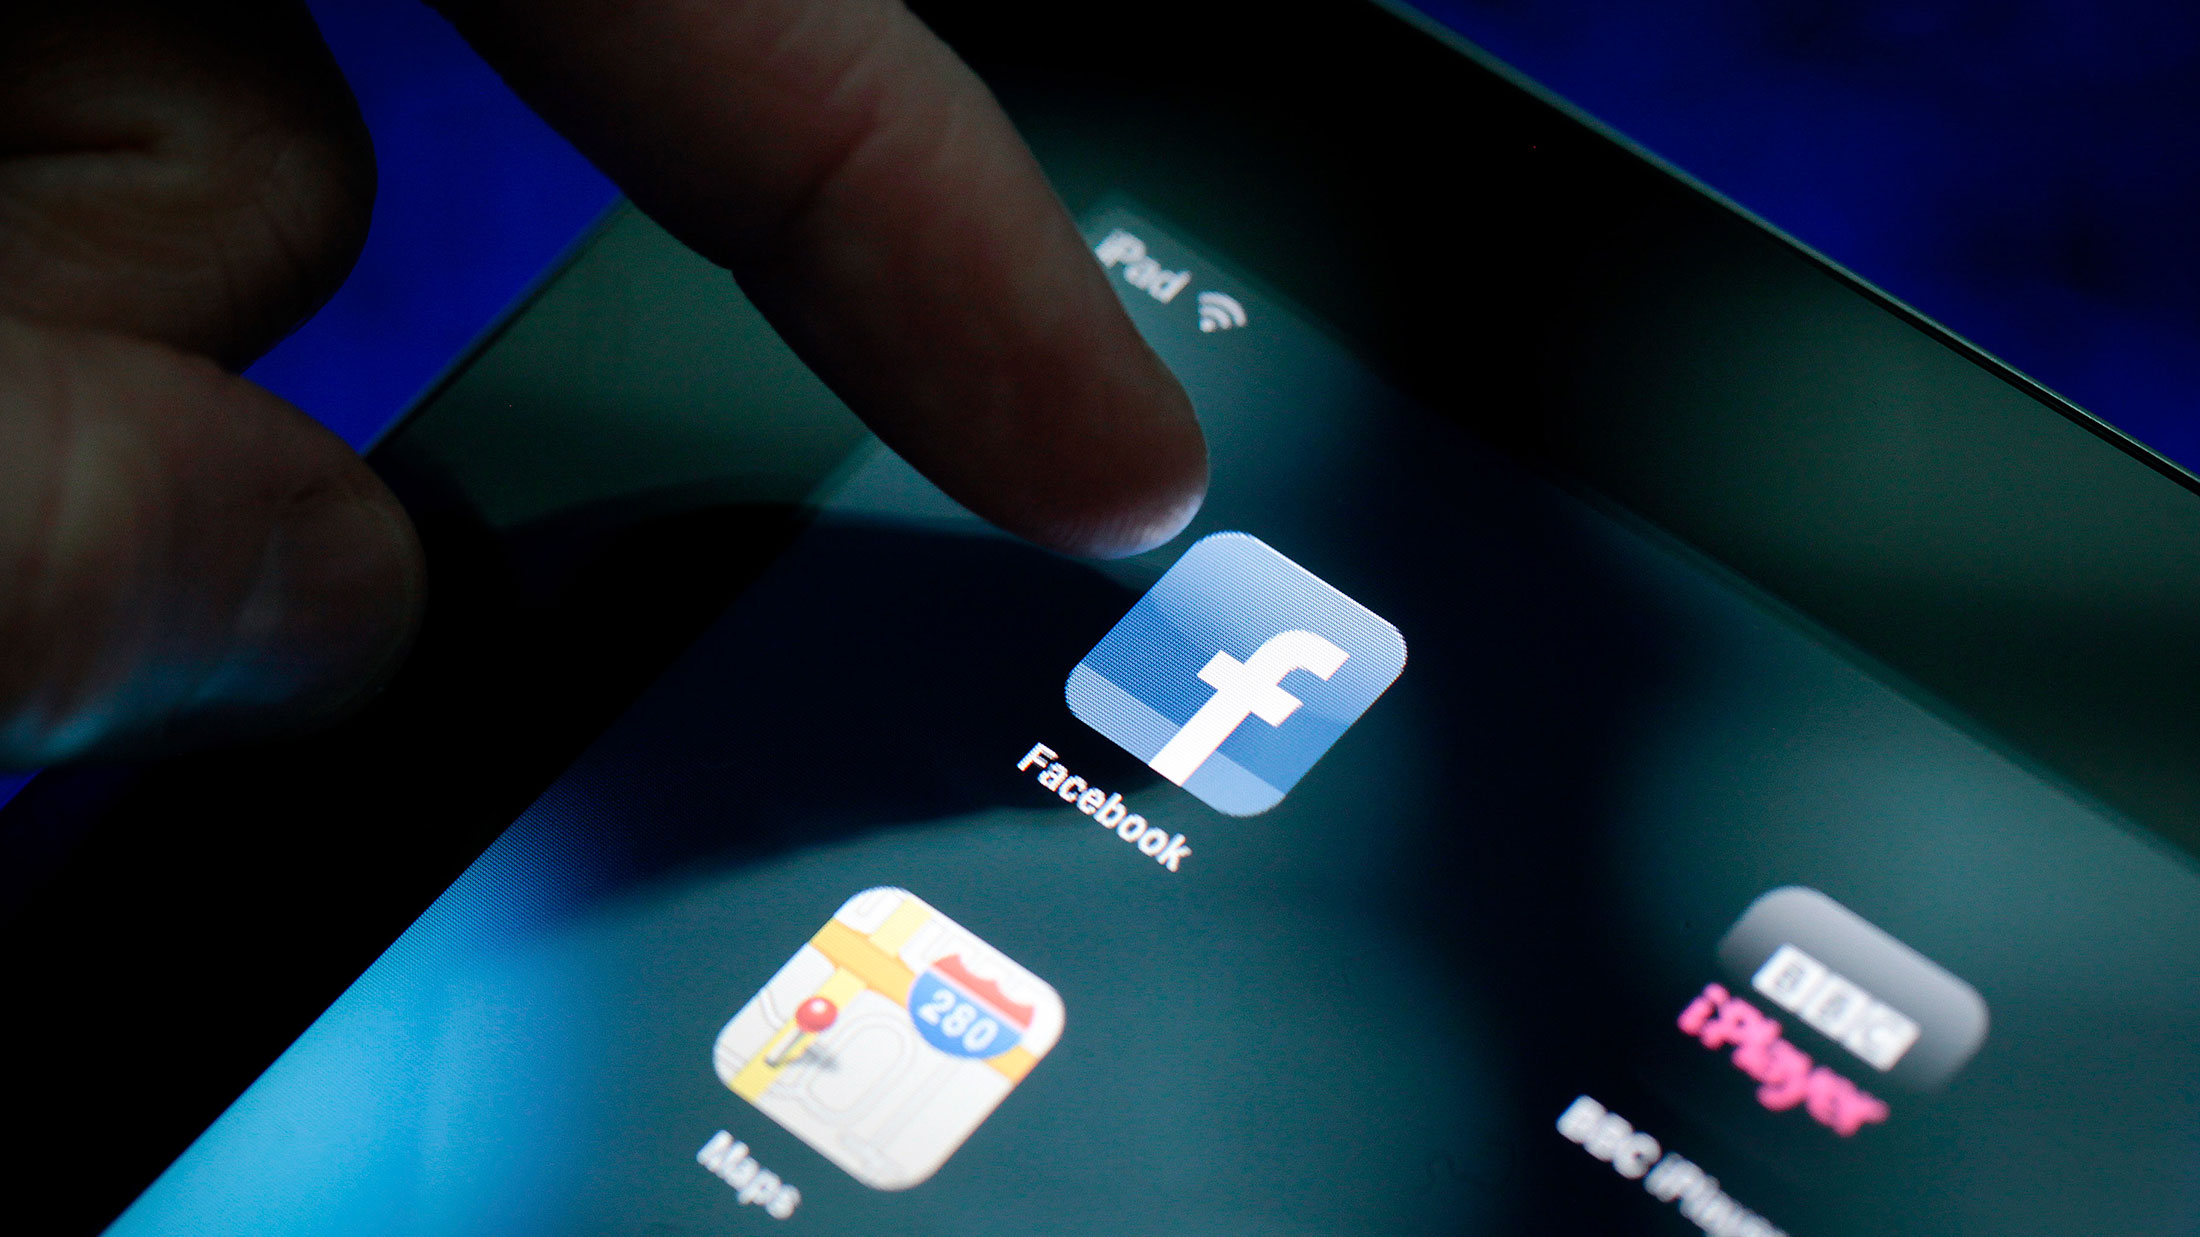 Facebook Introduces App That Sends Smartphone Alerts